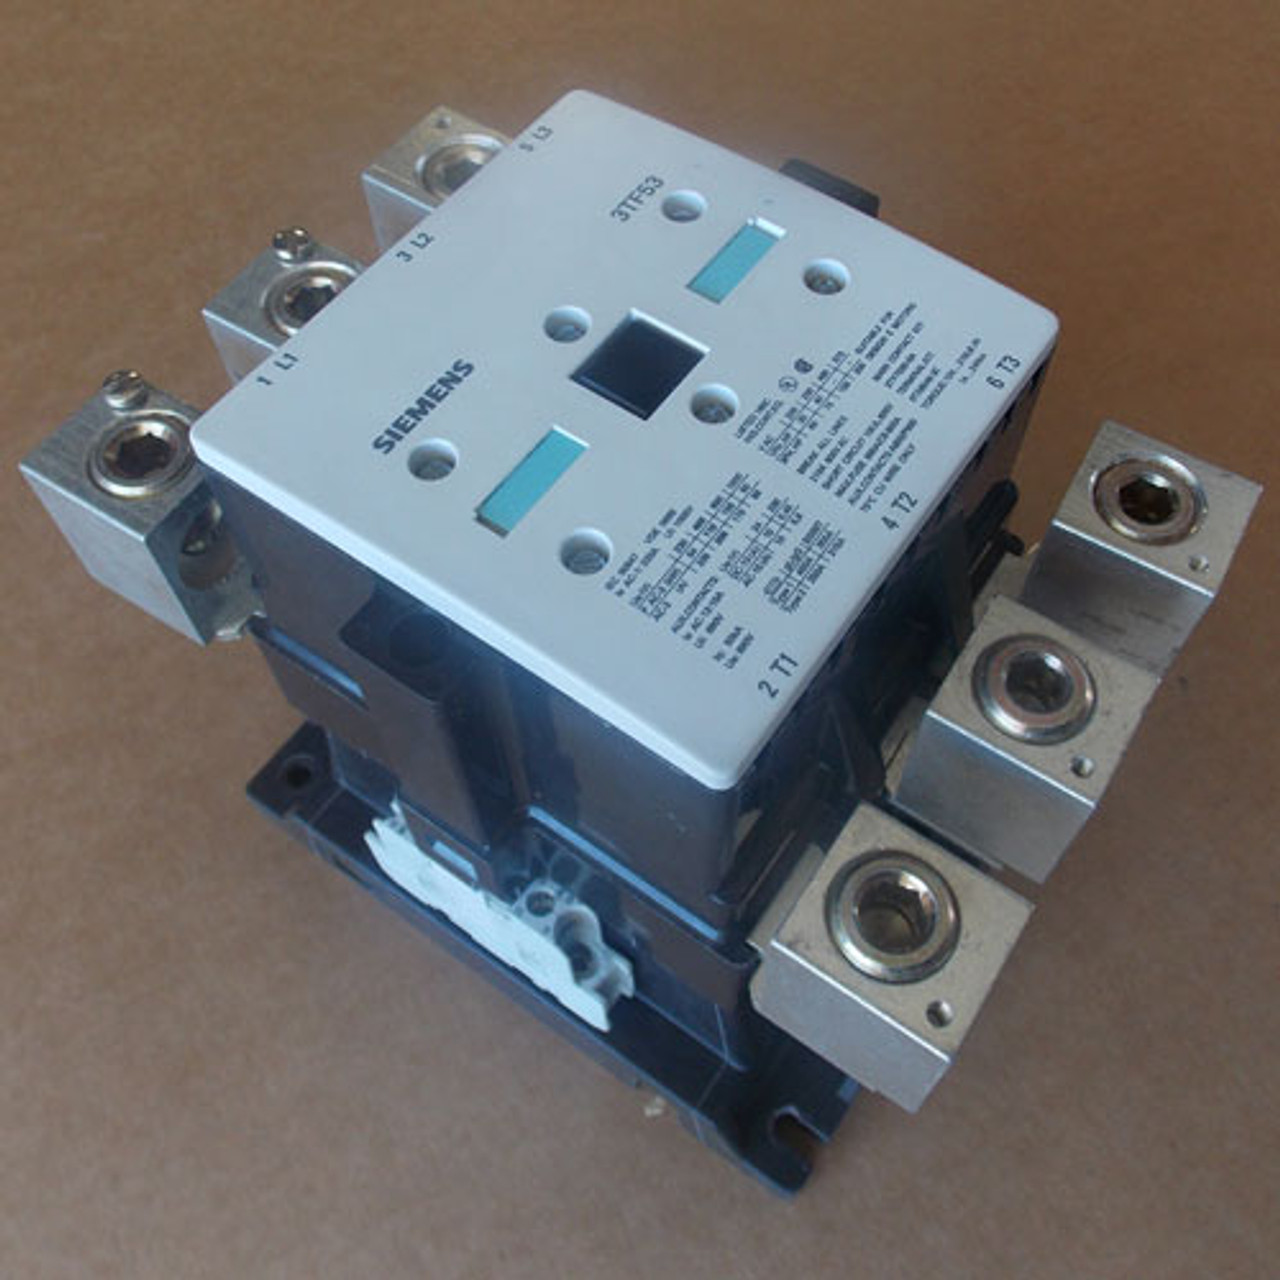 Siemens 3TF53 Magnetic Contactor 3 Phase 210 Amp 208V Coil - Used